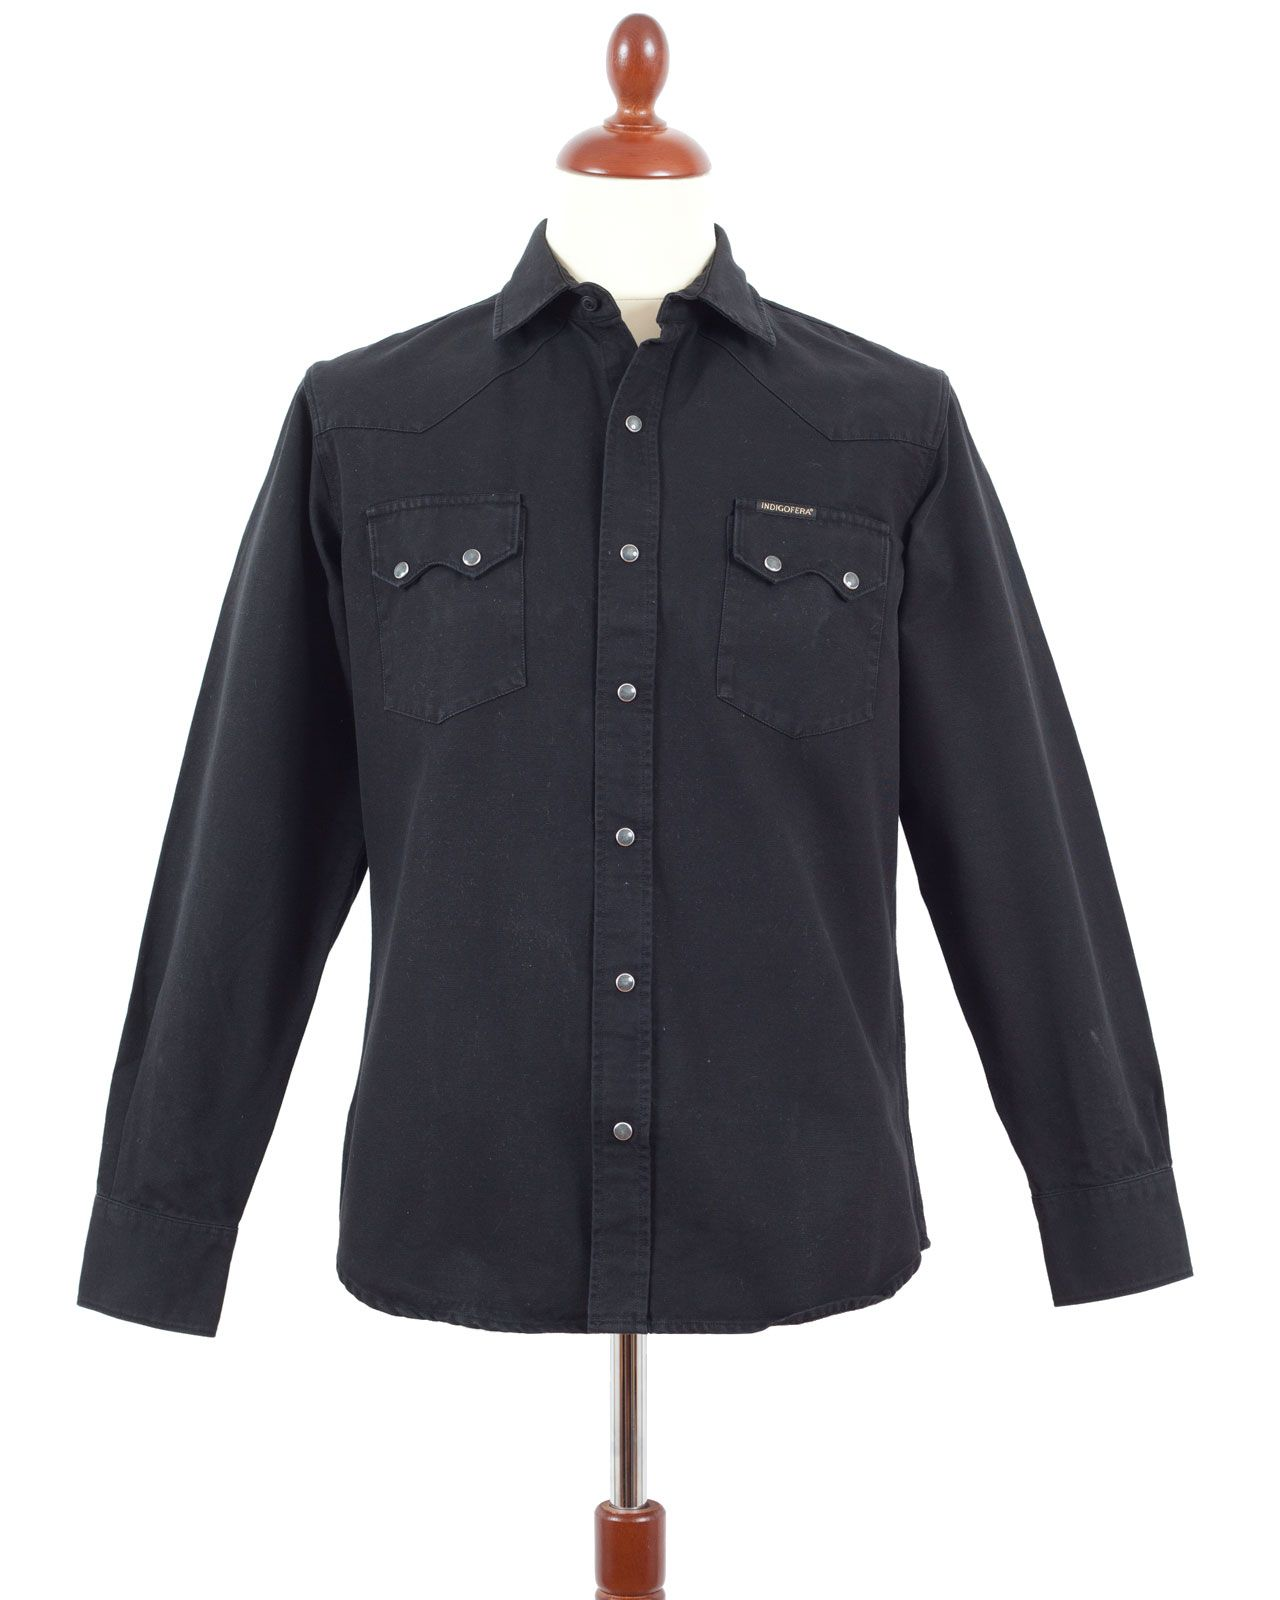 * Indigofera Dollard Shirt, Black. * 100% Cotton canvas fabric. * Two chest pockets. * Snap-buttons. * Made in Portugal.